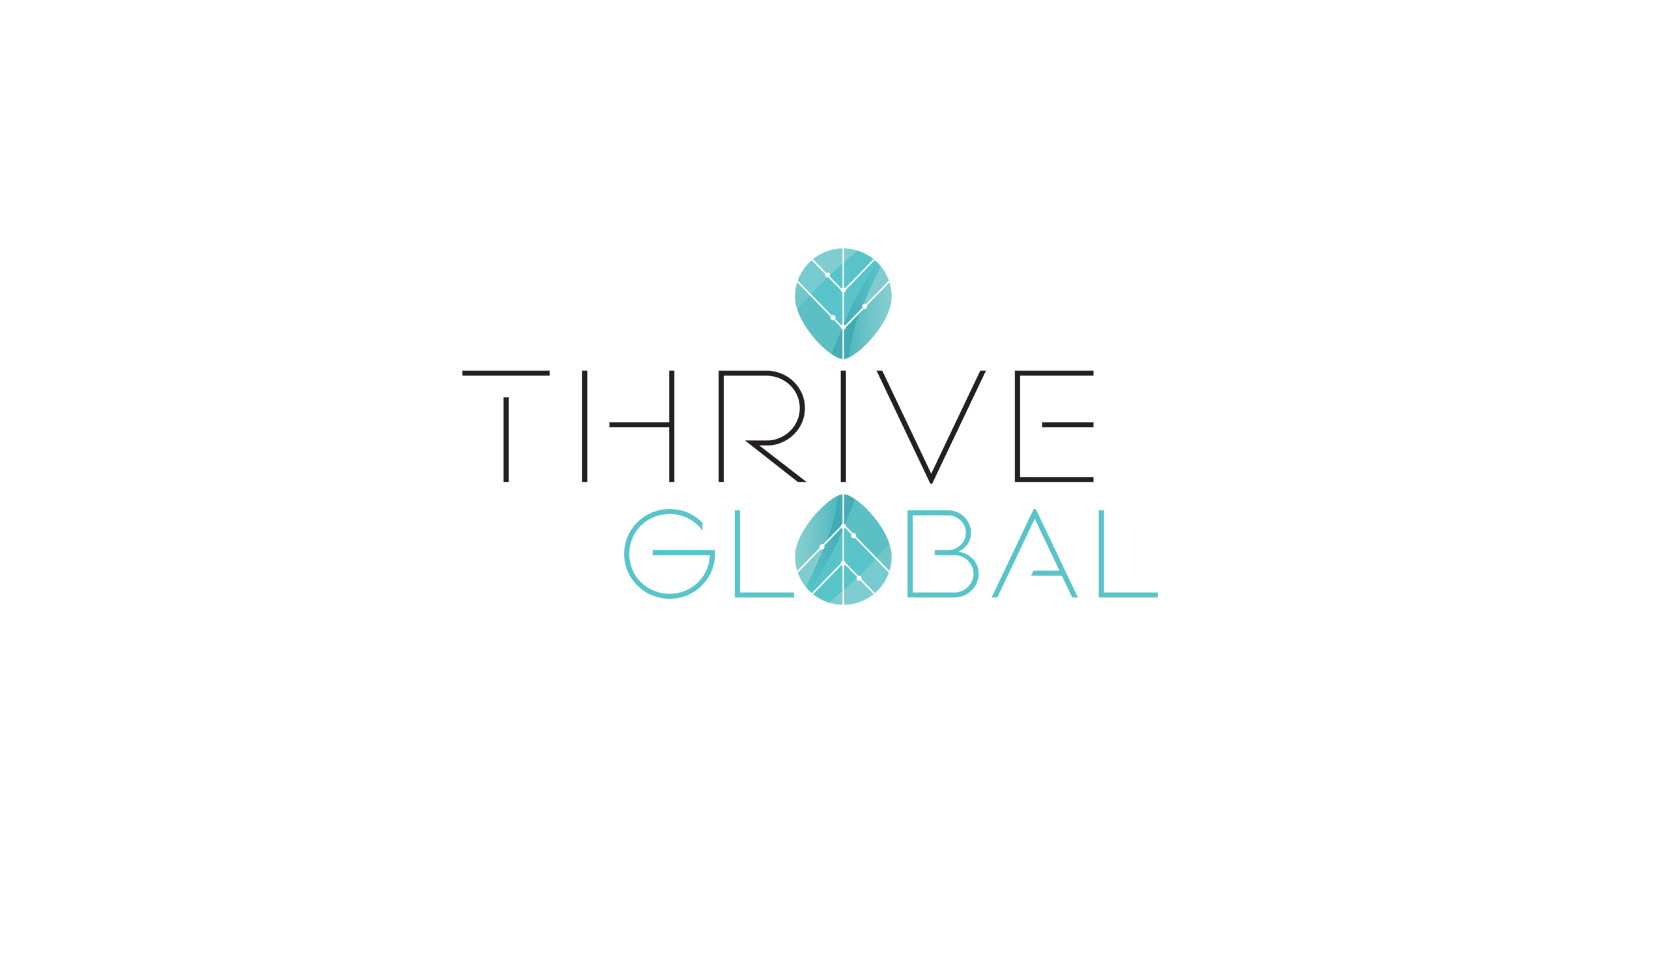 THRIVE-GLOBAL-1024A-1.jpg